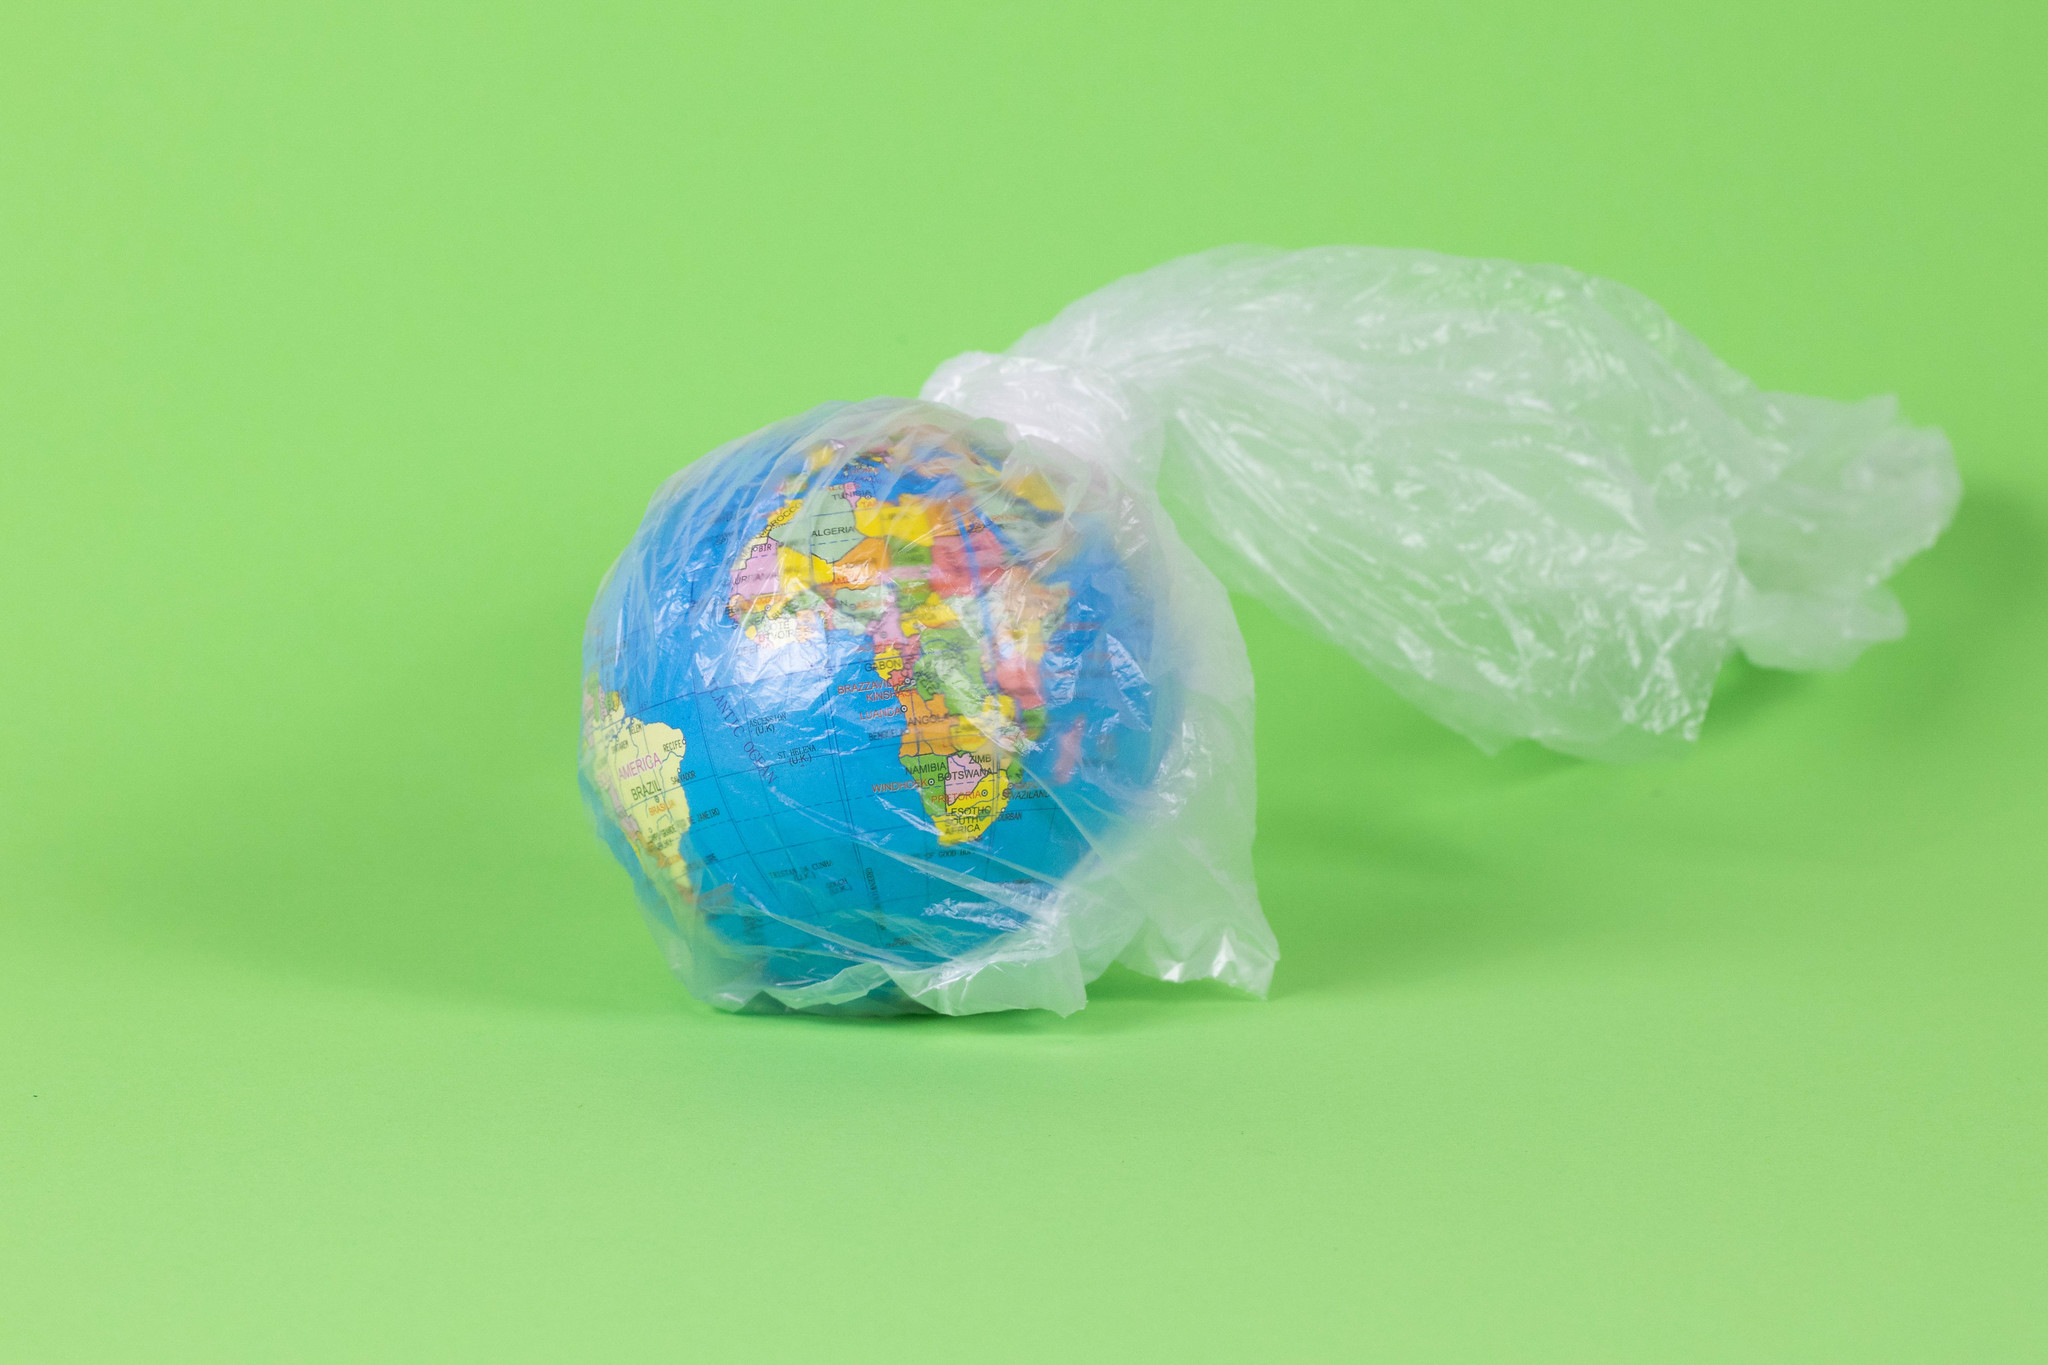 Australia Just Cut 80% of Its Plastic Bag Use in Just 3 Months.